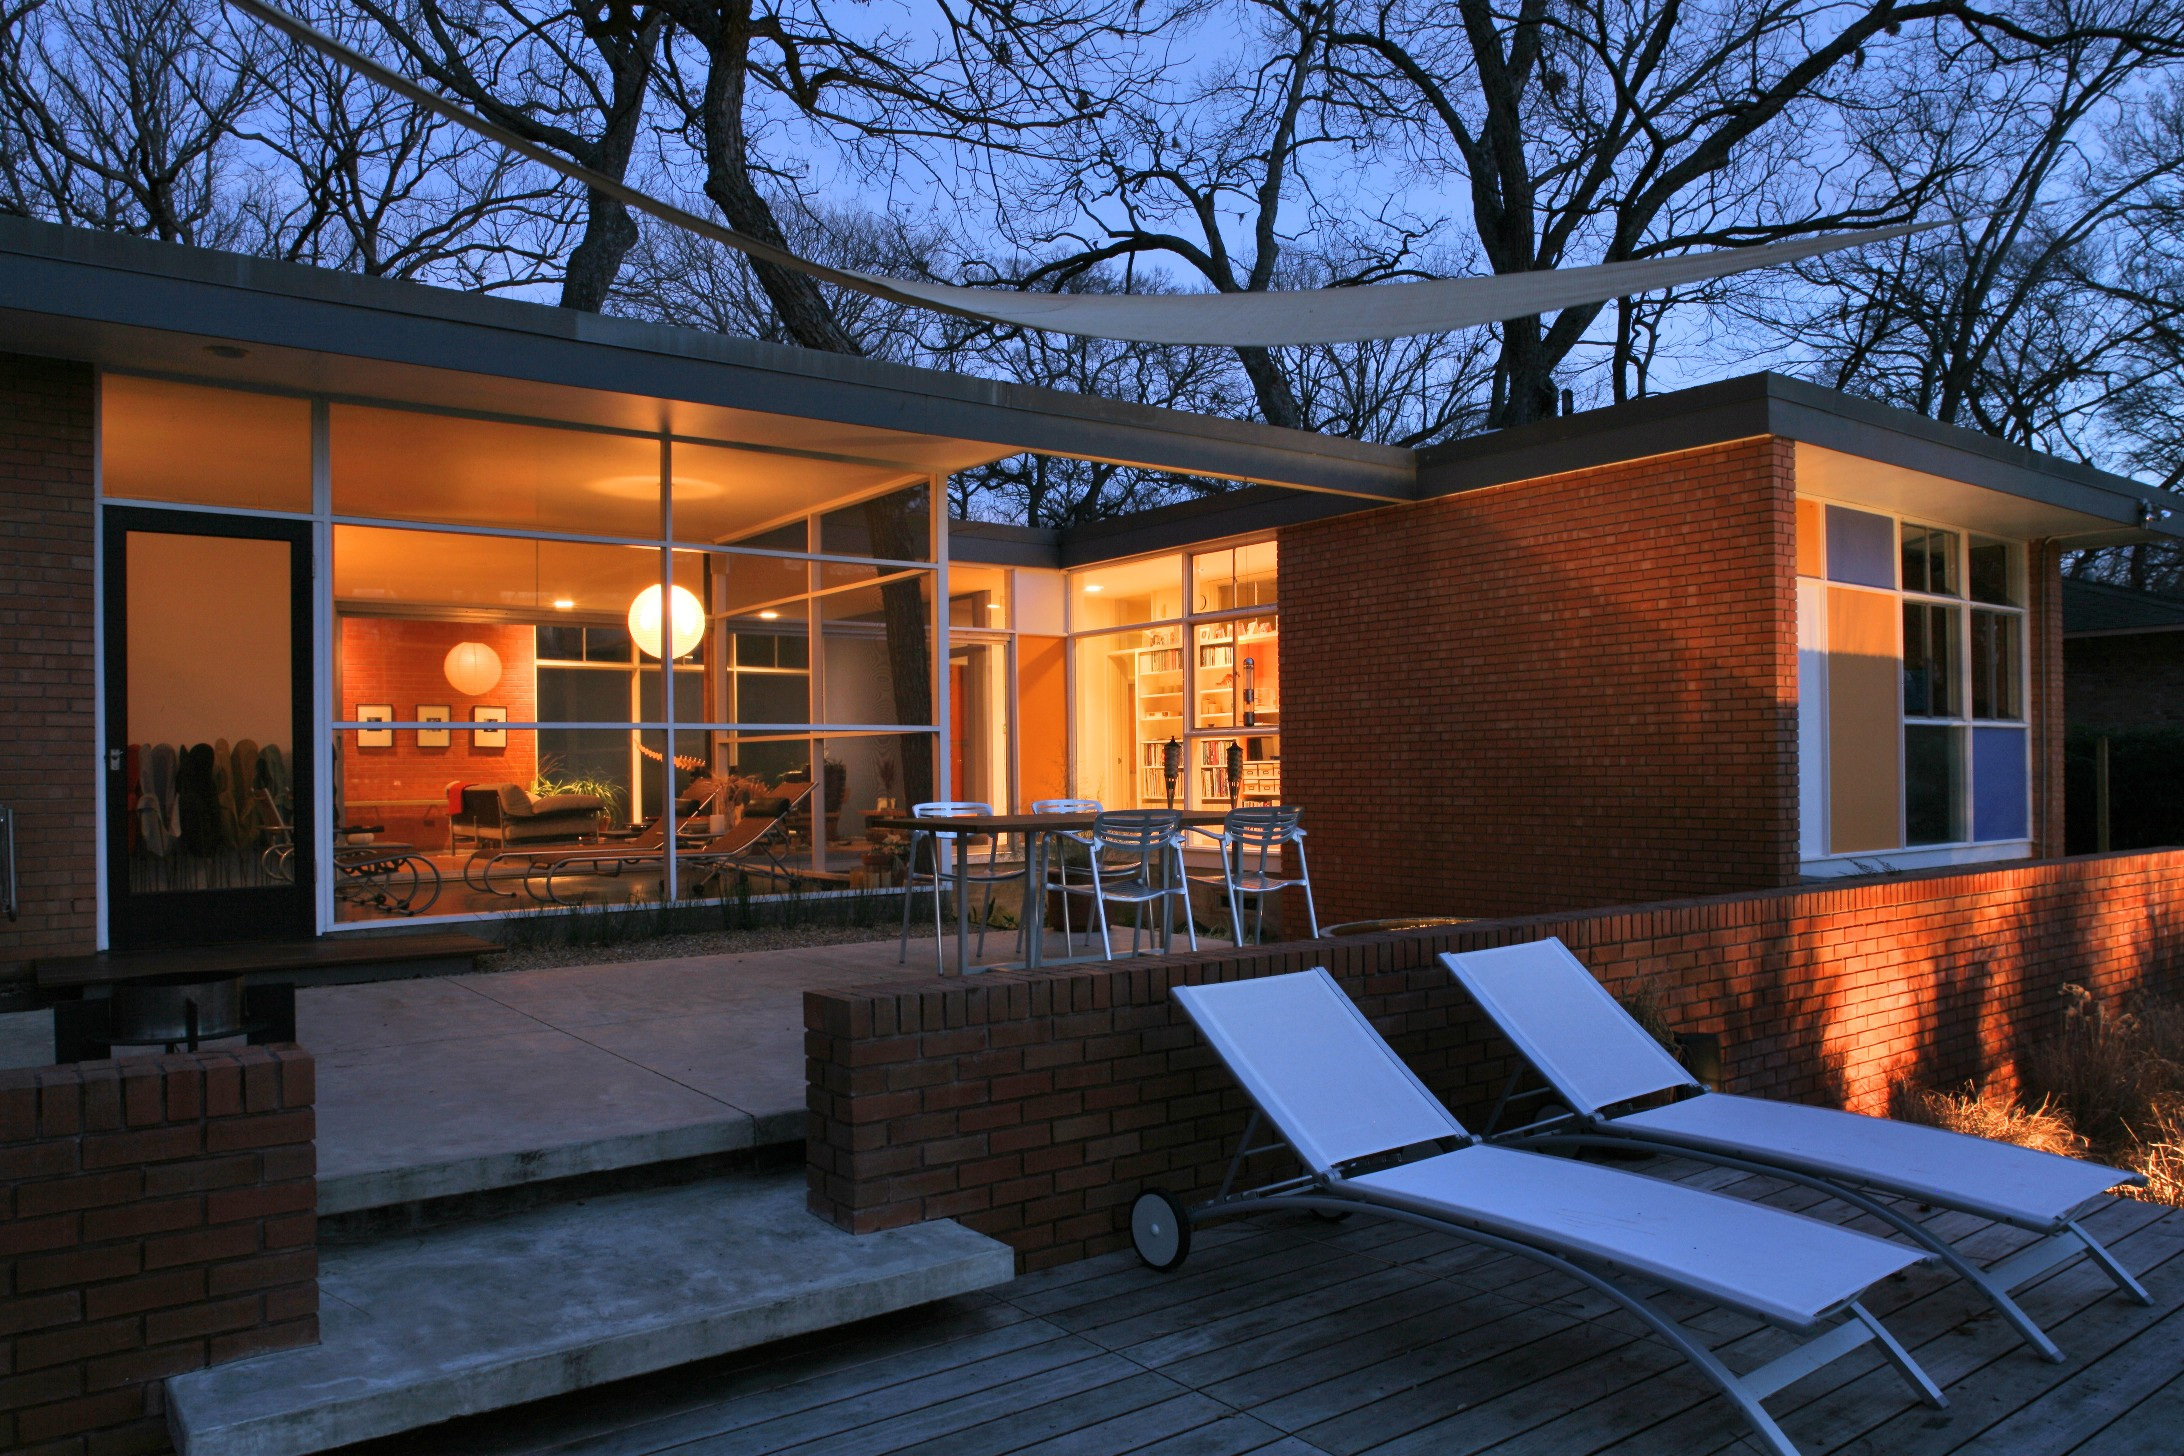 uncategorized-astounding-modern-prefab-homes-palm-springs-prefab-modern-homes-wisconsin-prefab-modern-homes-washington-state-modern-prefab-homes-washington-dc-modern-prefab-homes-west-virginia